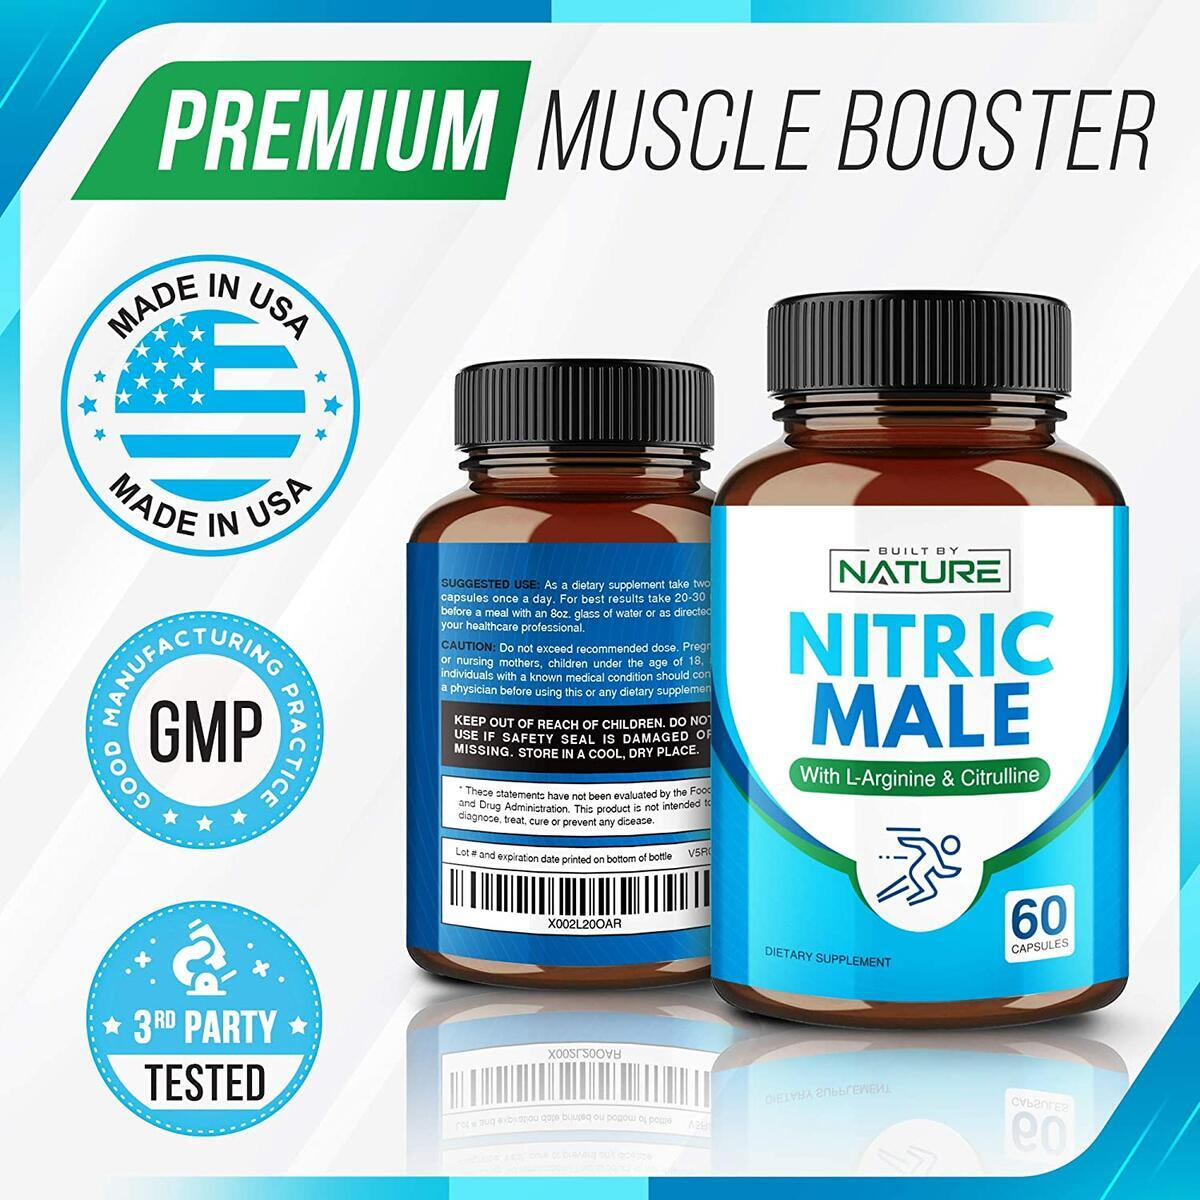 Nitric Male - Nitric Oxide Booster Supplement with L Arginine and L Citrulline for Blood Flow Support - 60 Capsules (30 Day Supply)